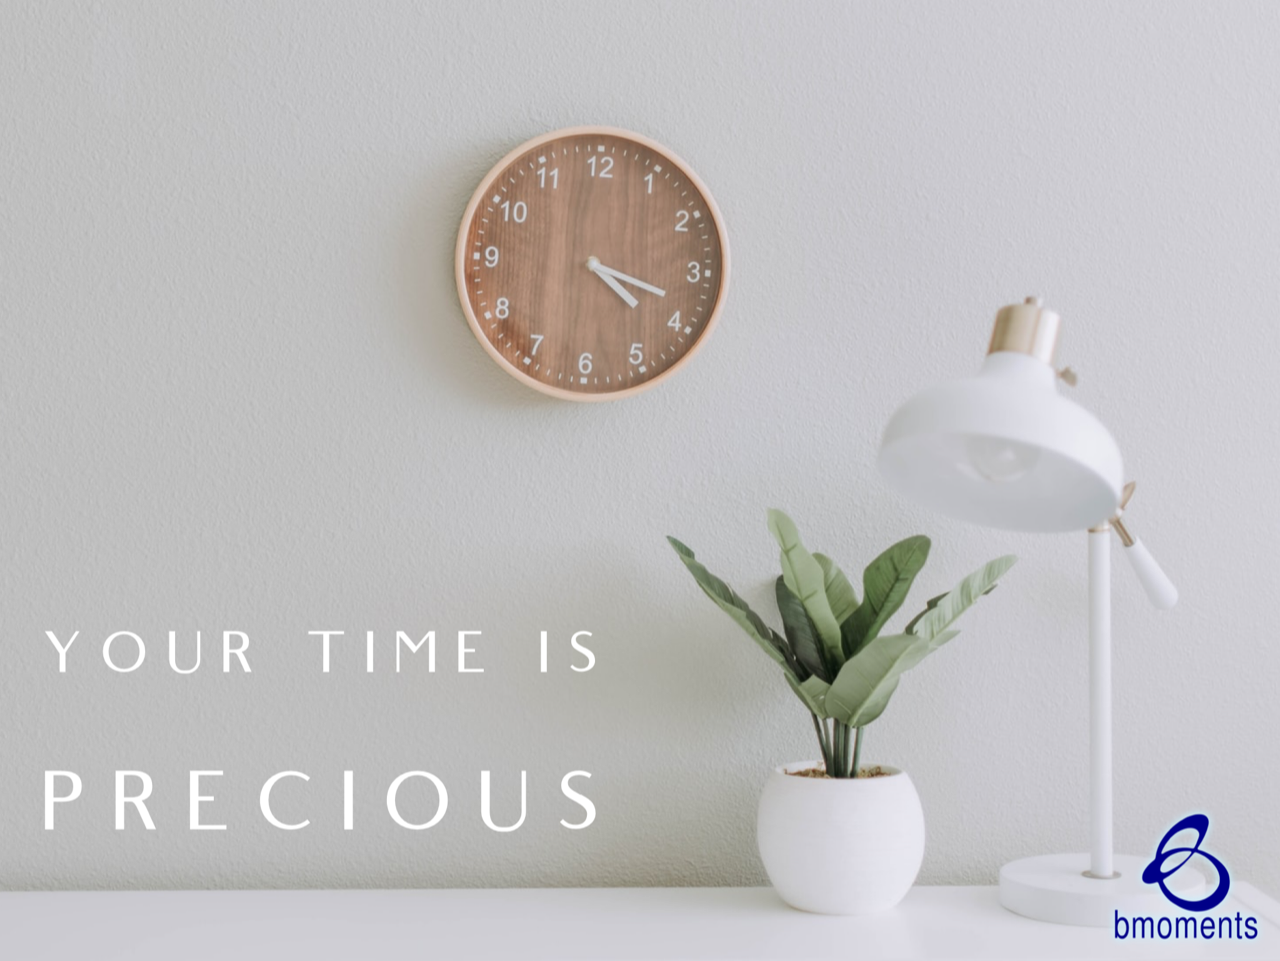 Are You Using Your Time Wisely?